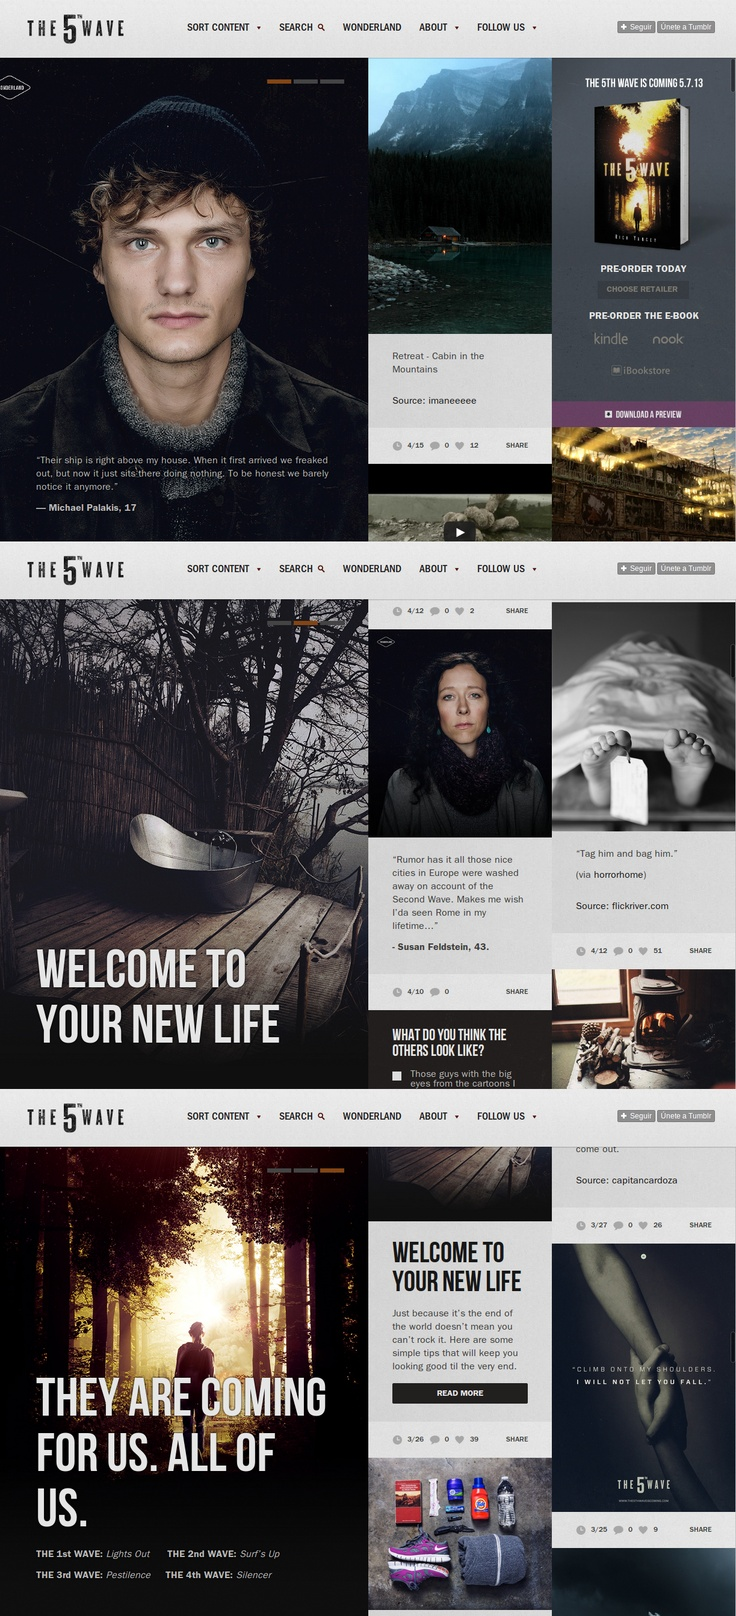 The 5th Wave is Coming http://www.awwwards.com/best-websites/the-5th-wave-is-coming #FilmsMoviesTVInfinite #Scroll #Typography #Responsive #DesignFullscreen #SocialMedia #GraphicDesign